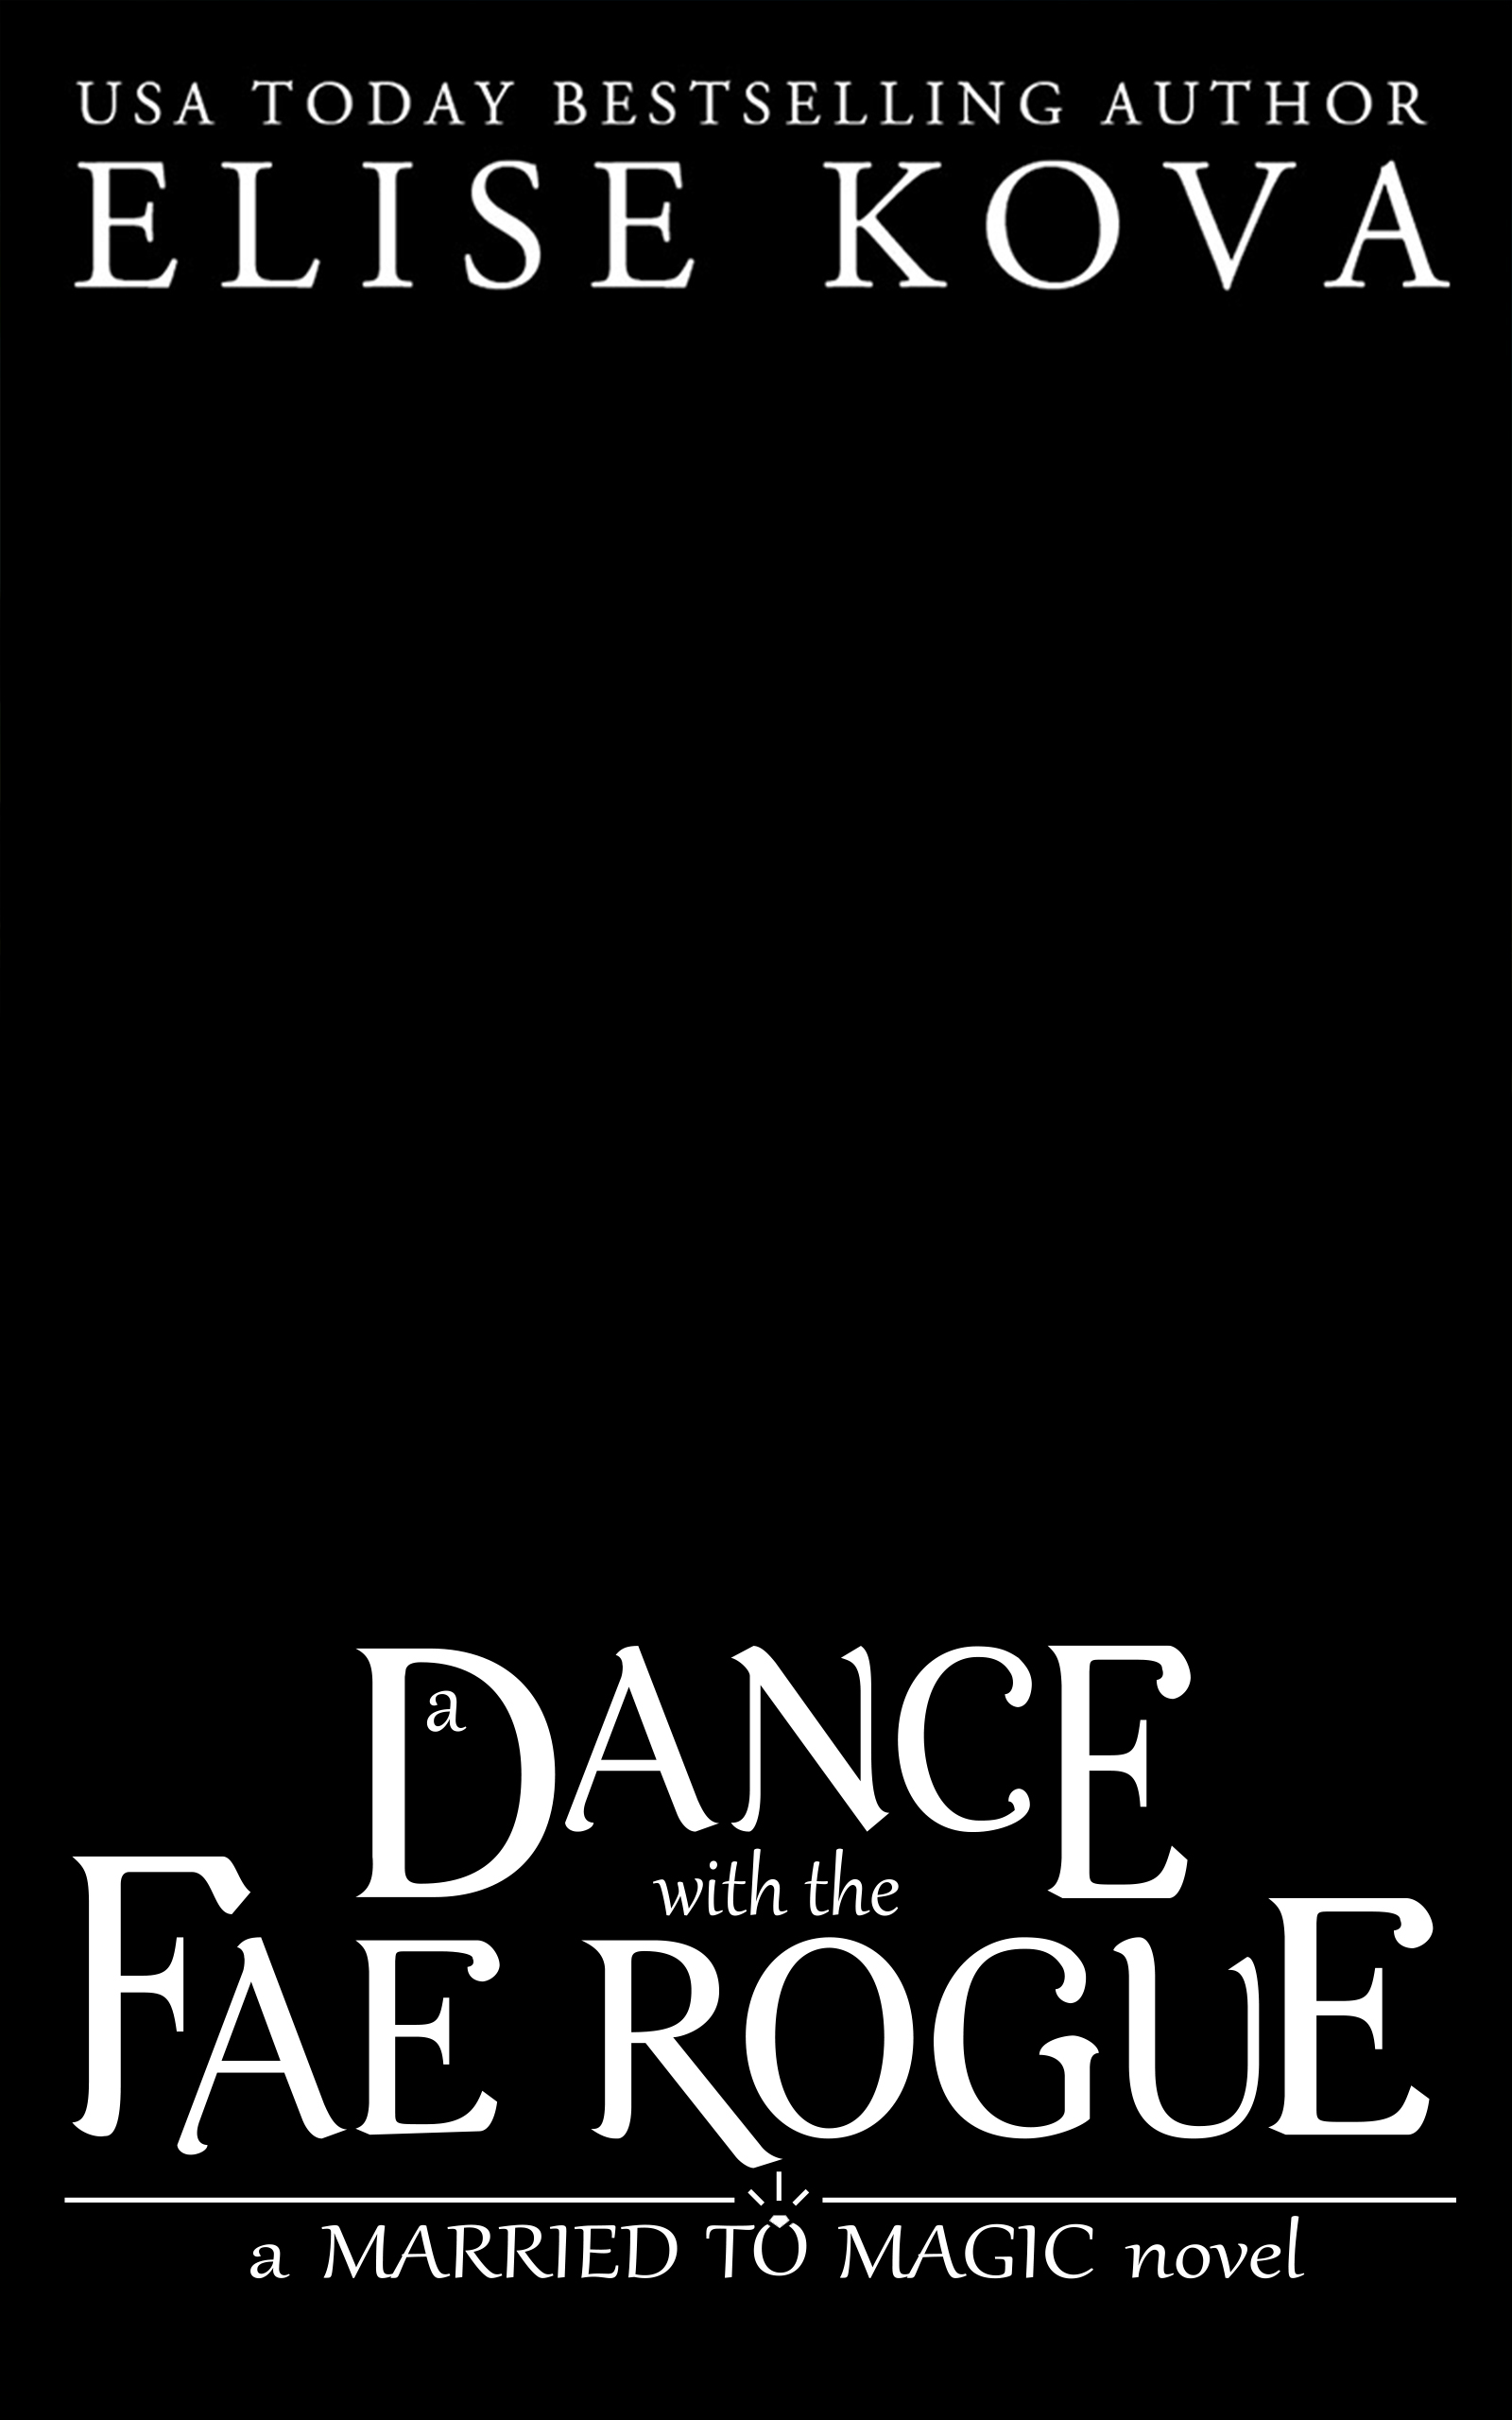 A Dance with the Fae Rogue Temp Cover